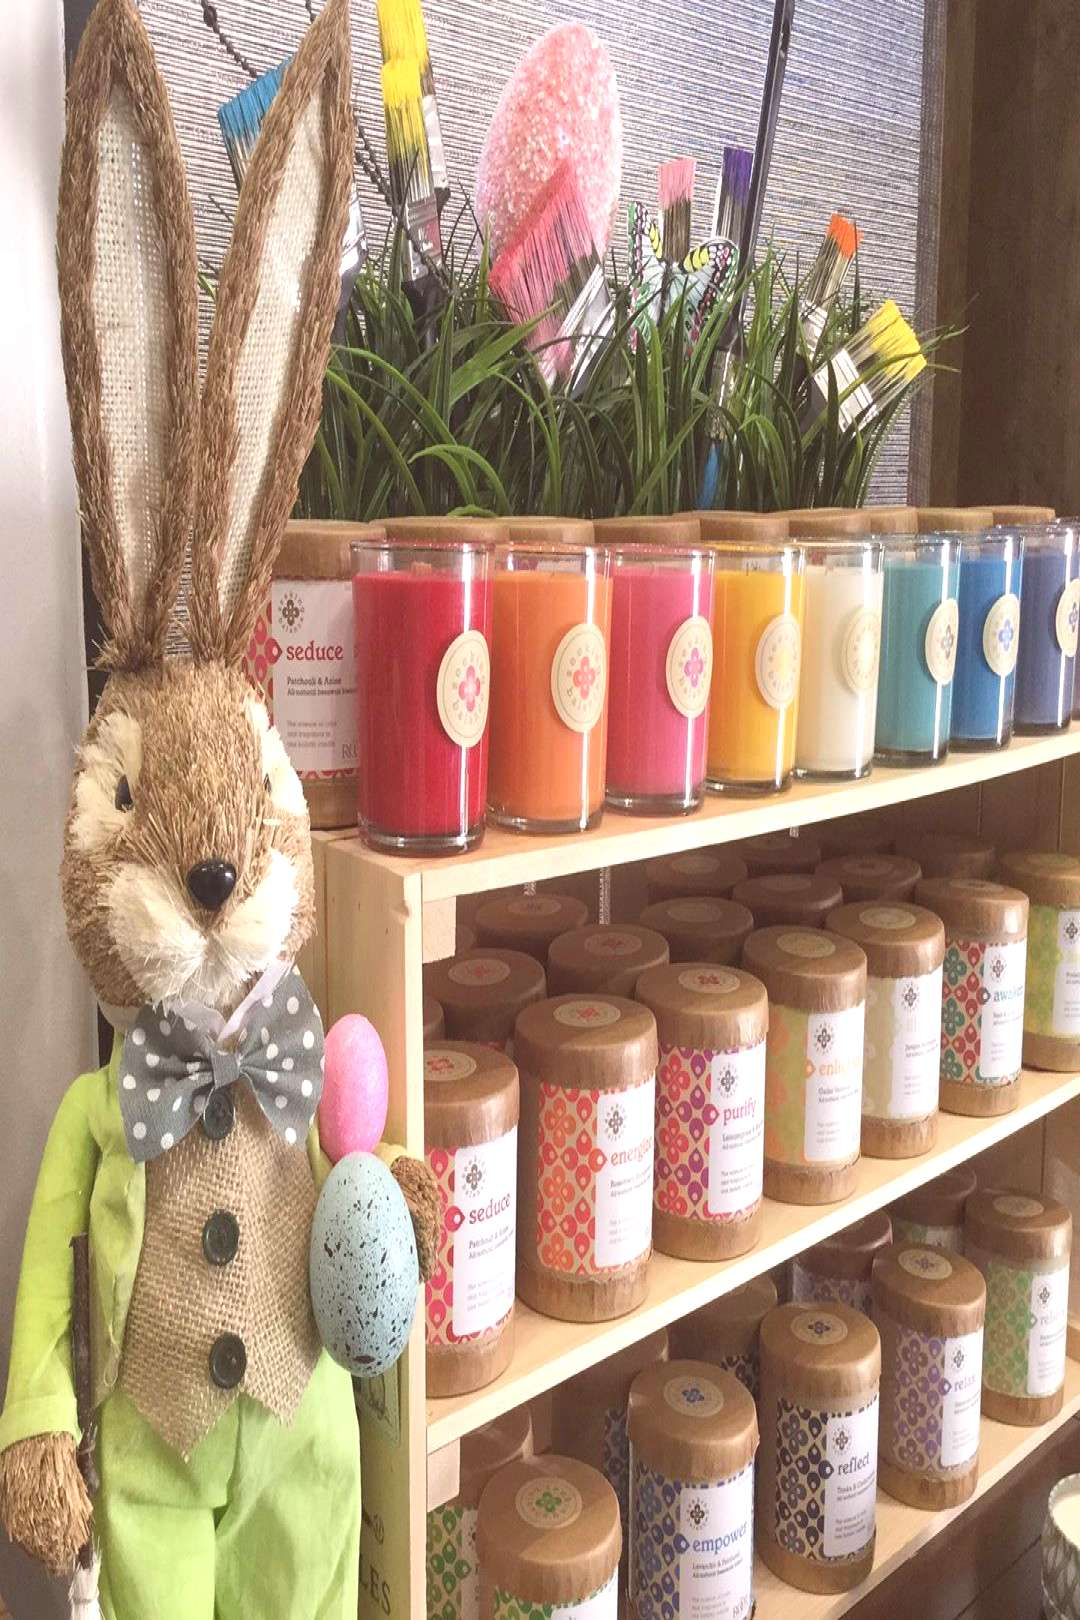 Getting ready for SpRiNg! #easterdecor #easterboutique